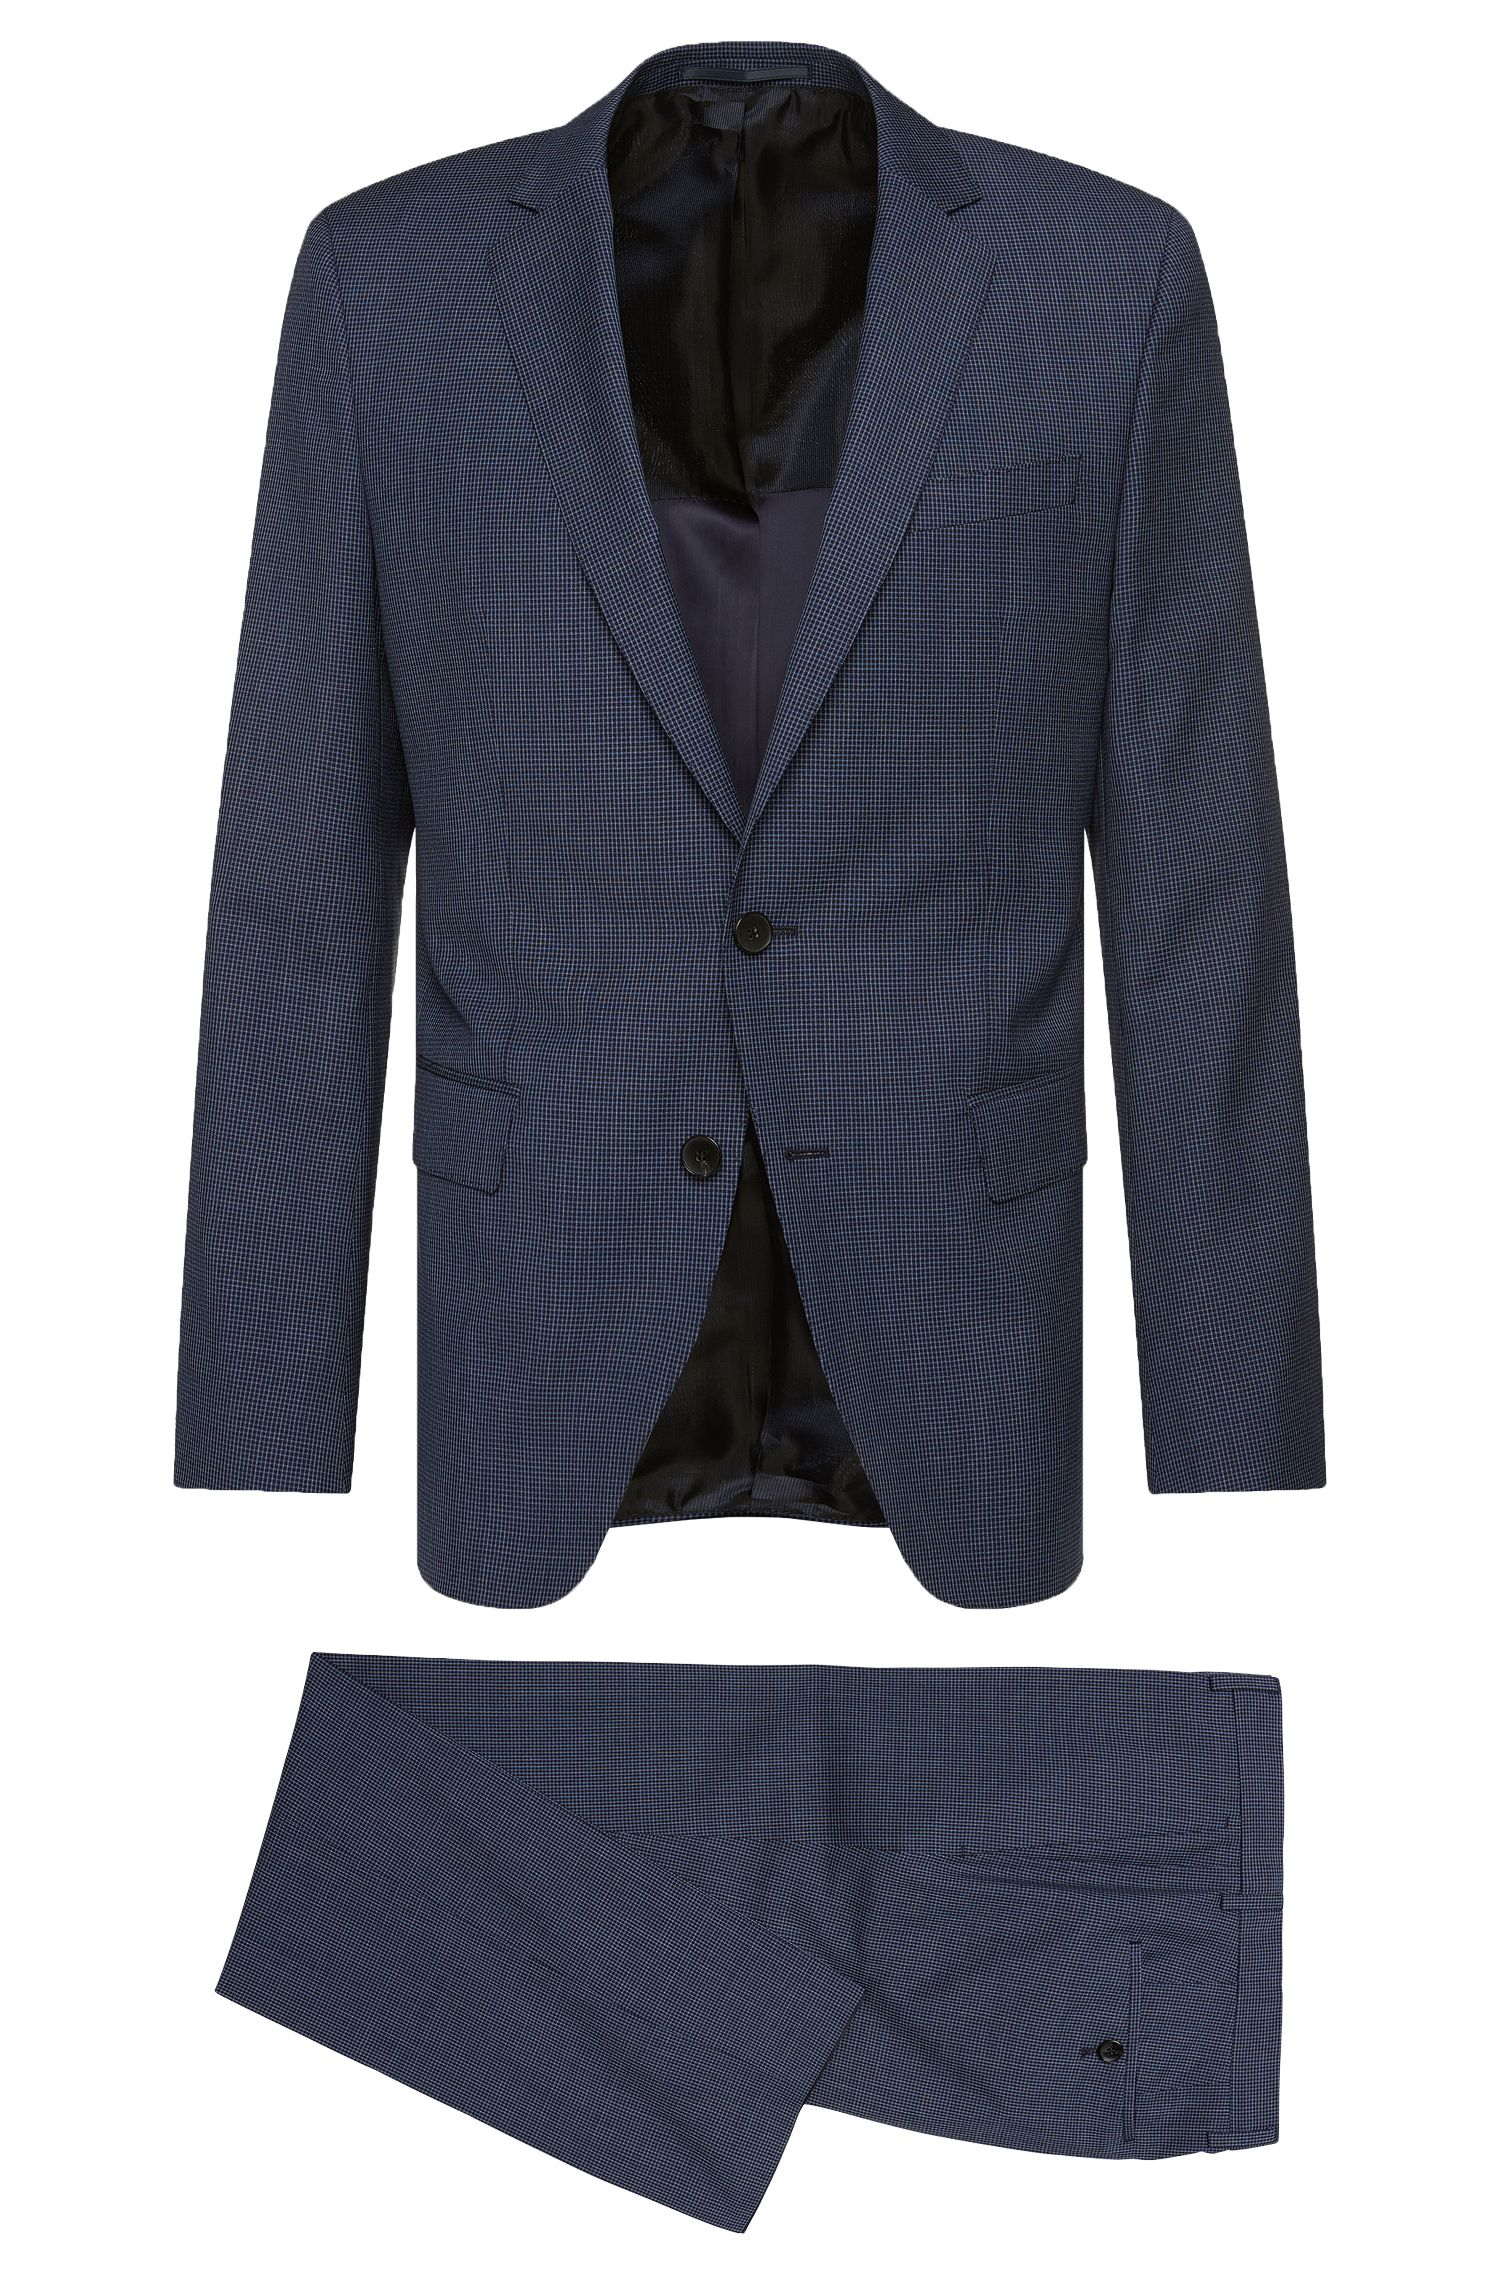 'Huge/Genius' | Slim Fit, Micro-Check Italian Super 120 Virgin Wool Suit